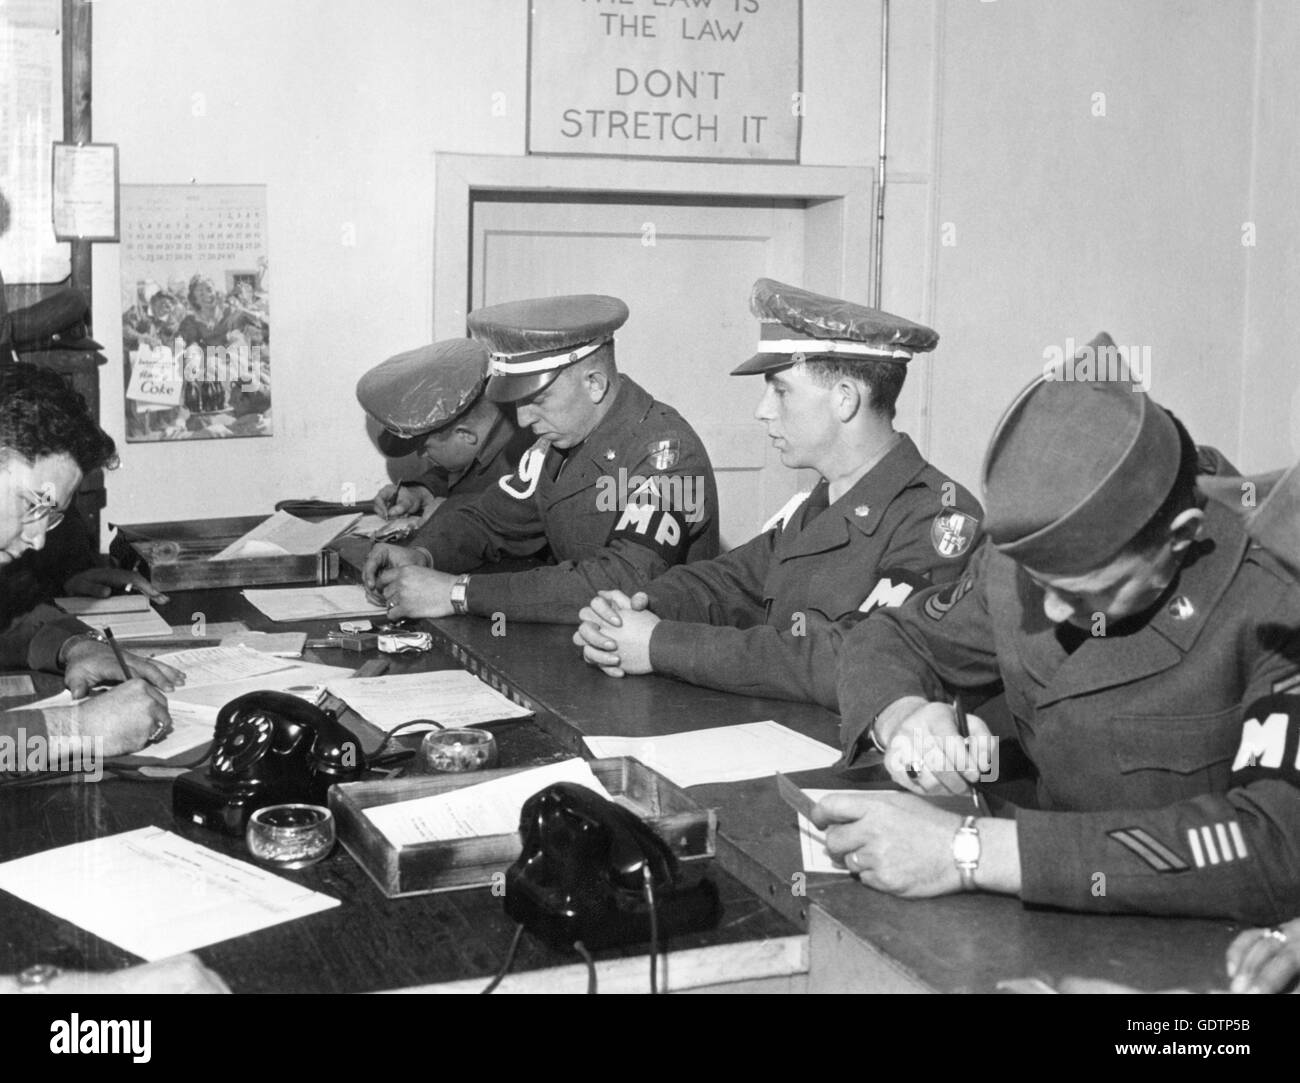 US Military Police during the occupation period - Stock Image